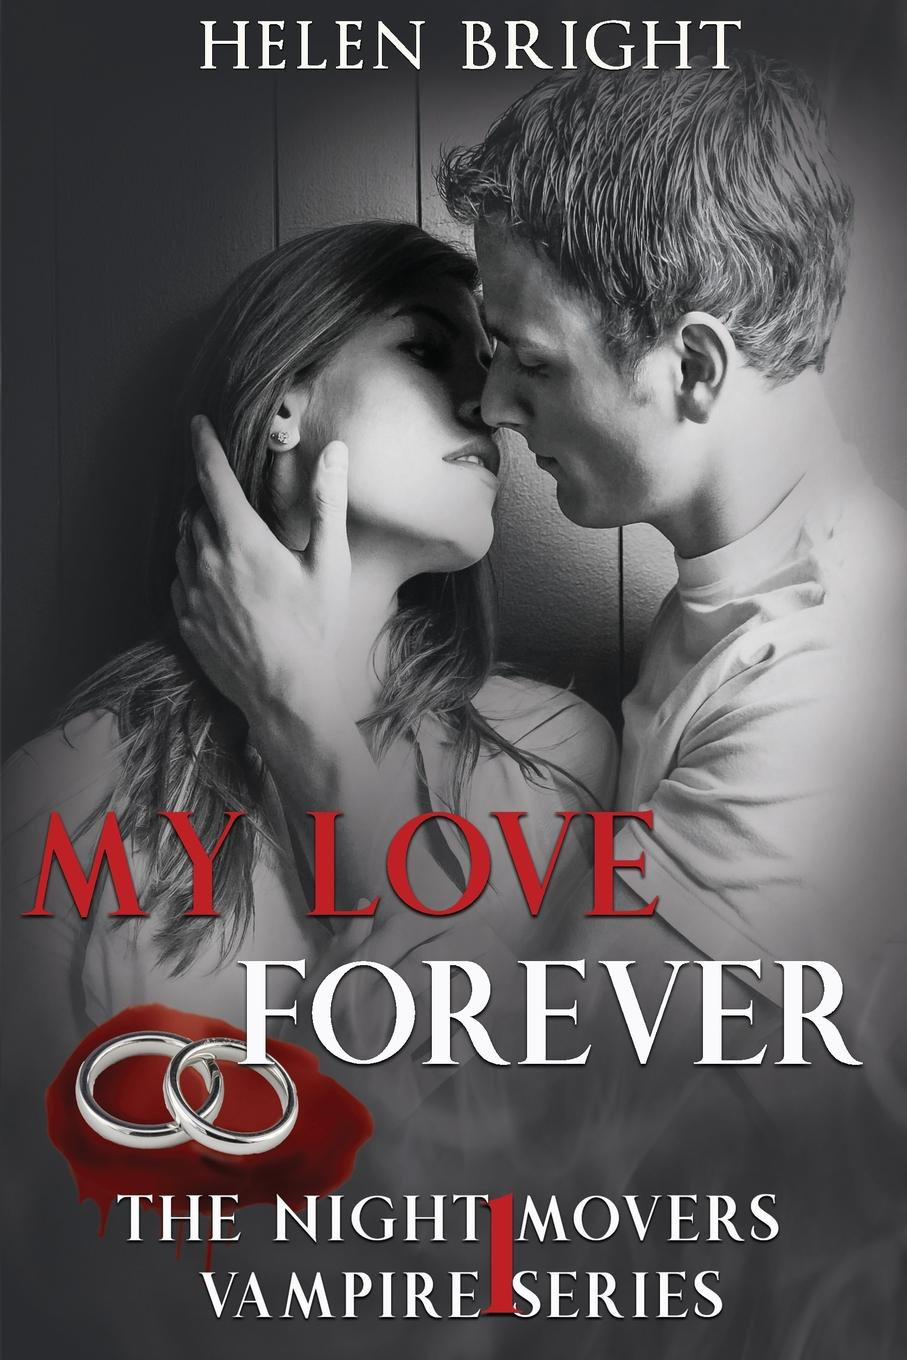 Helen Bright My Love Forever. The Night Movers Vampire Series Book One julia alex a margarita and luca book 1